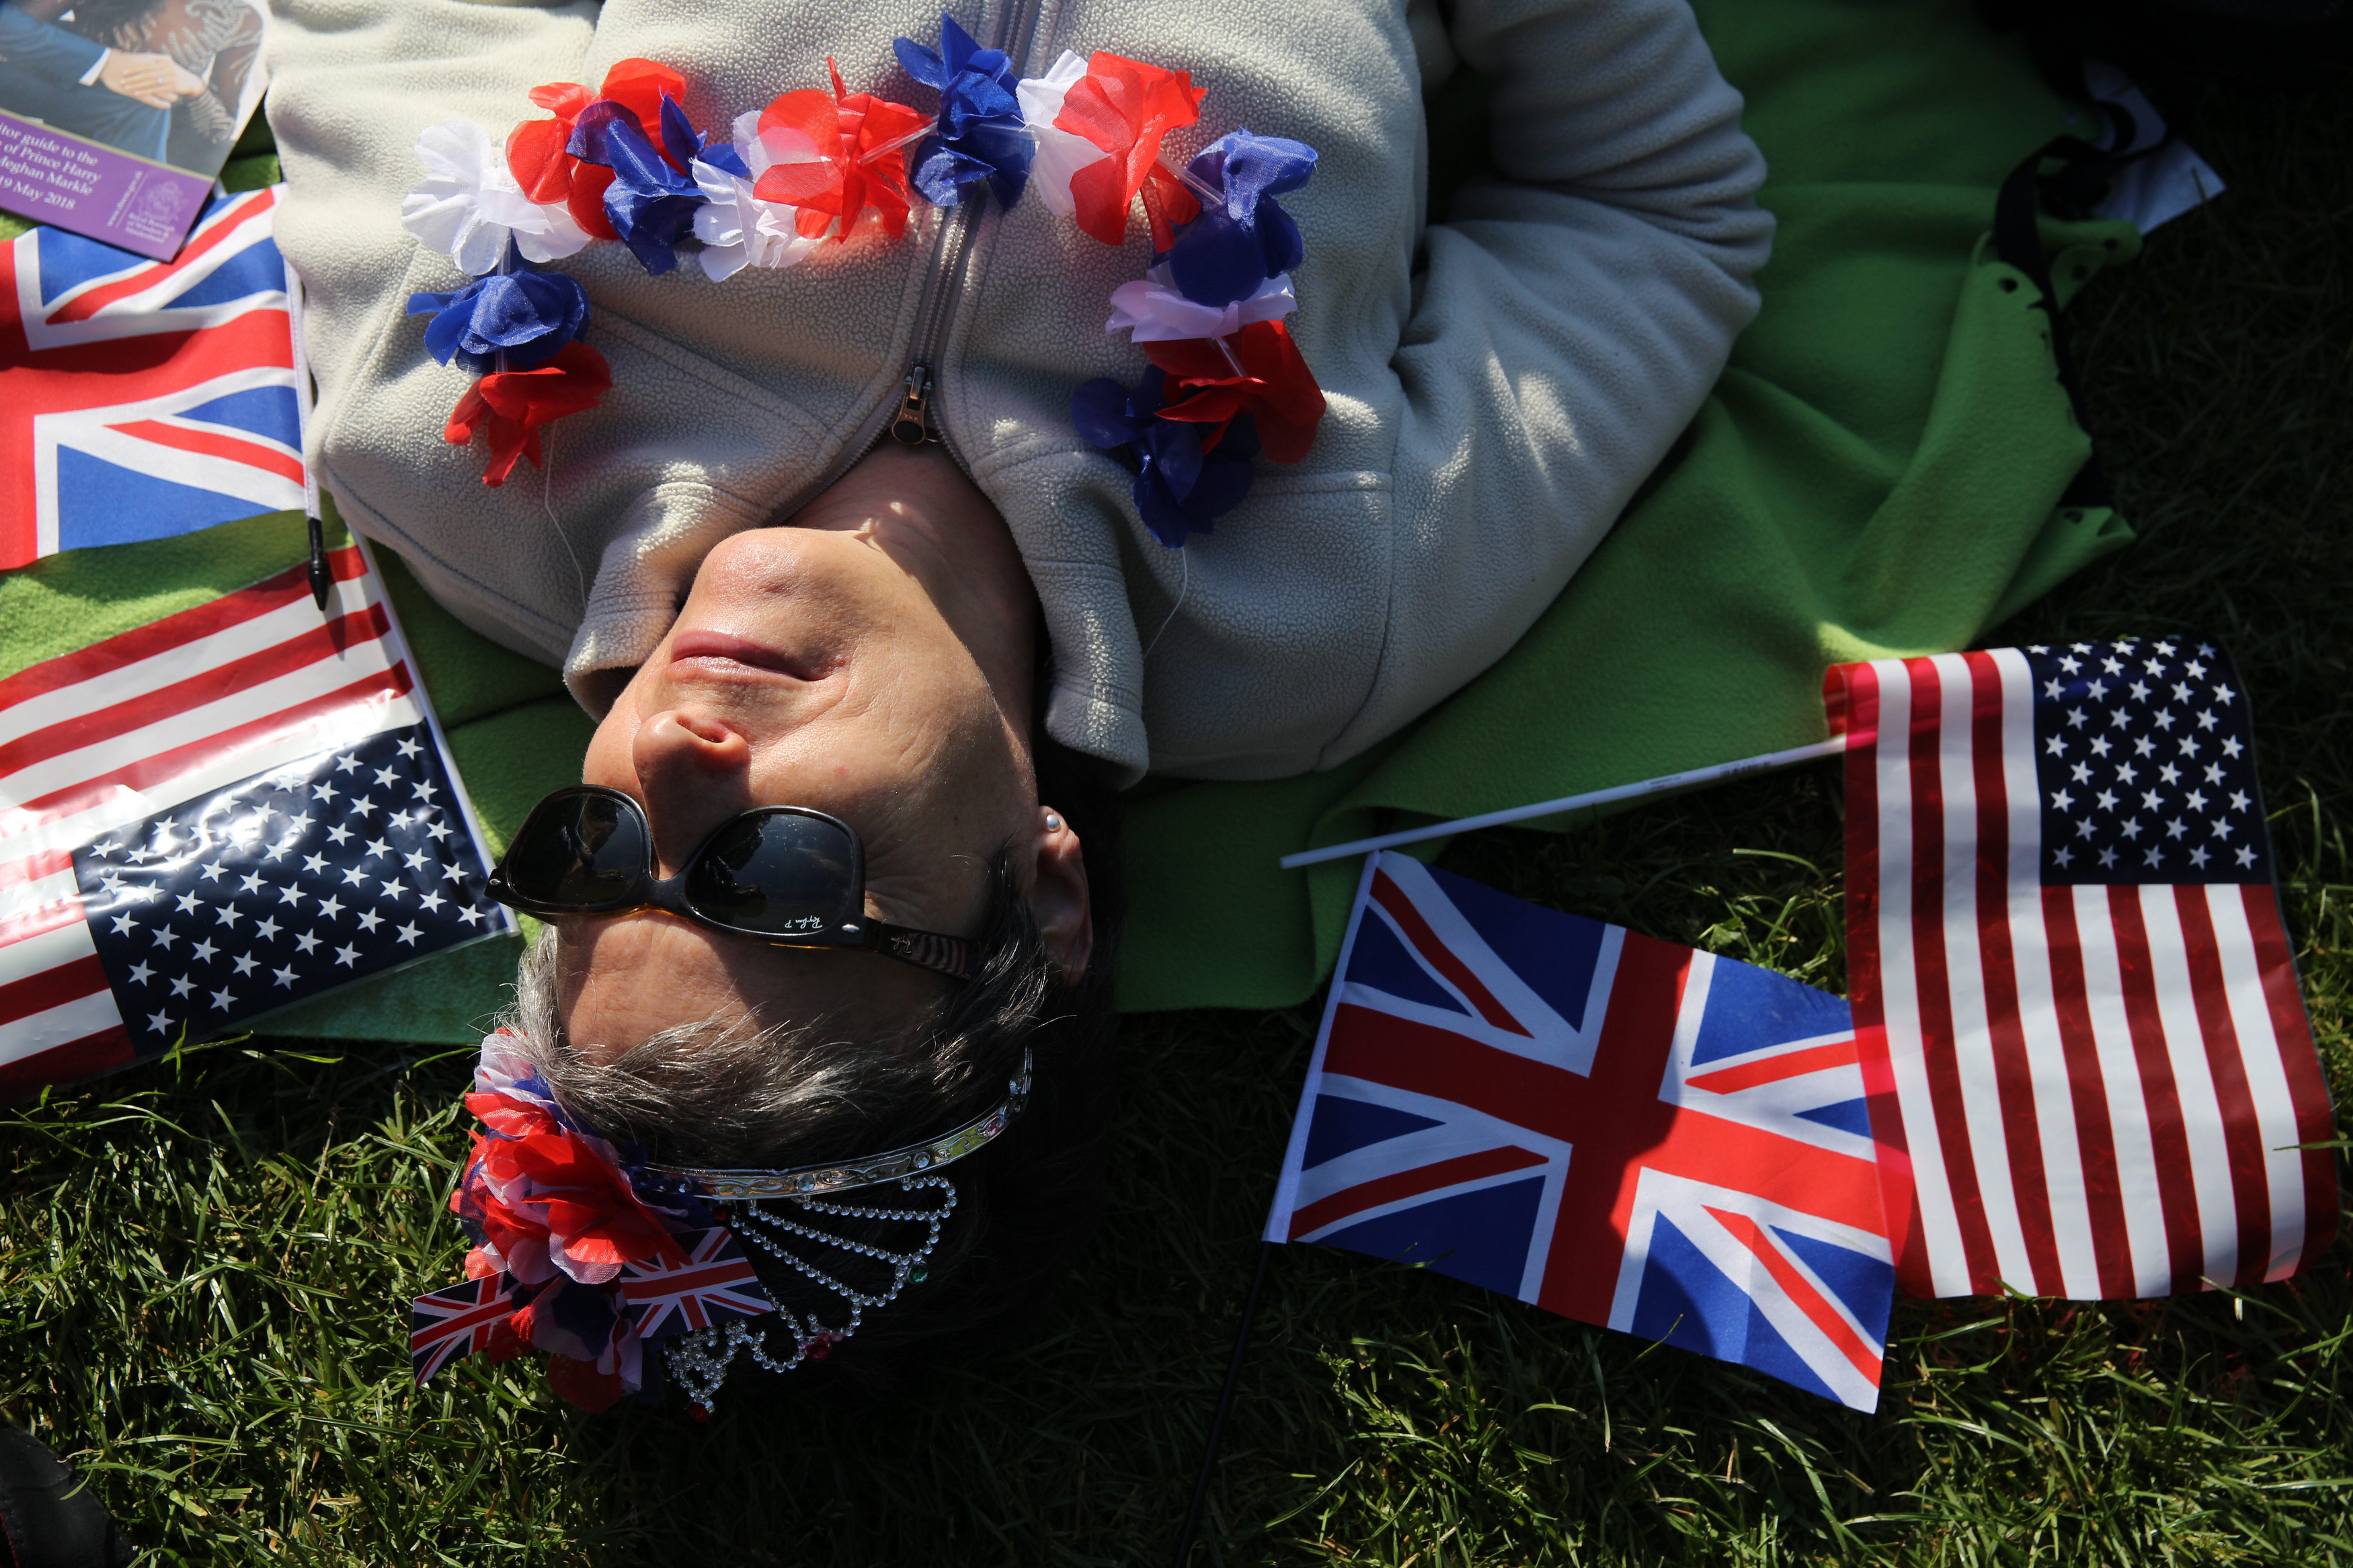 A woman rests along the Long Walk while waiting for the royal family and guests to arrive at Windsor Castle.